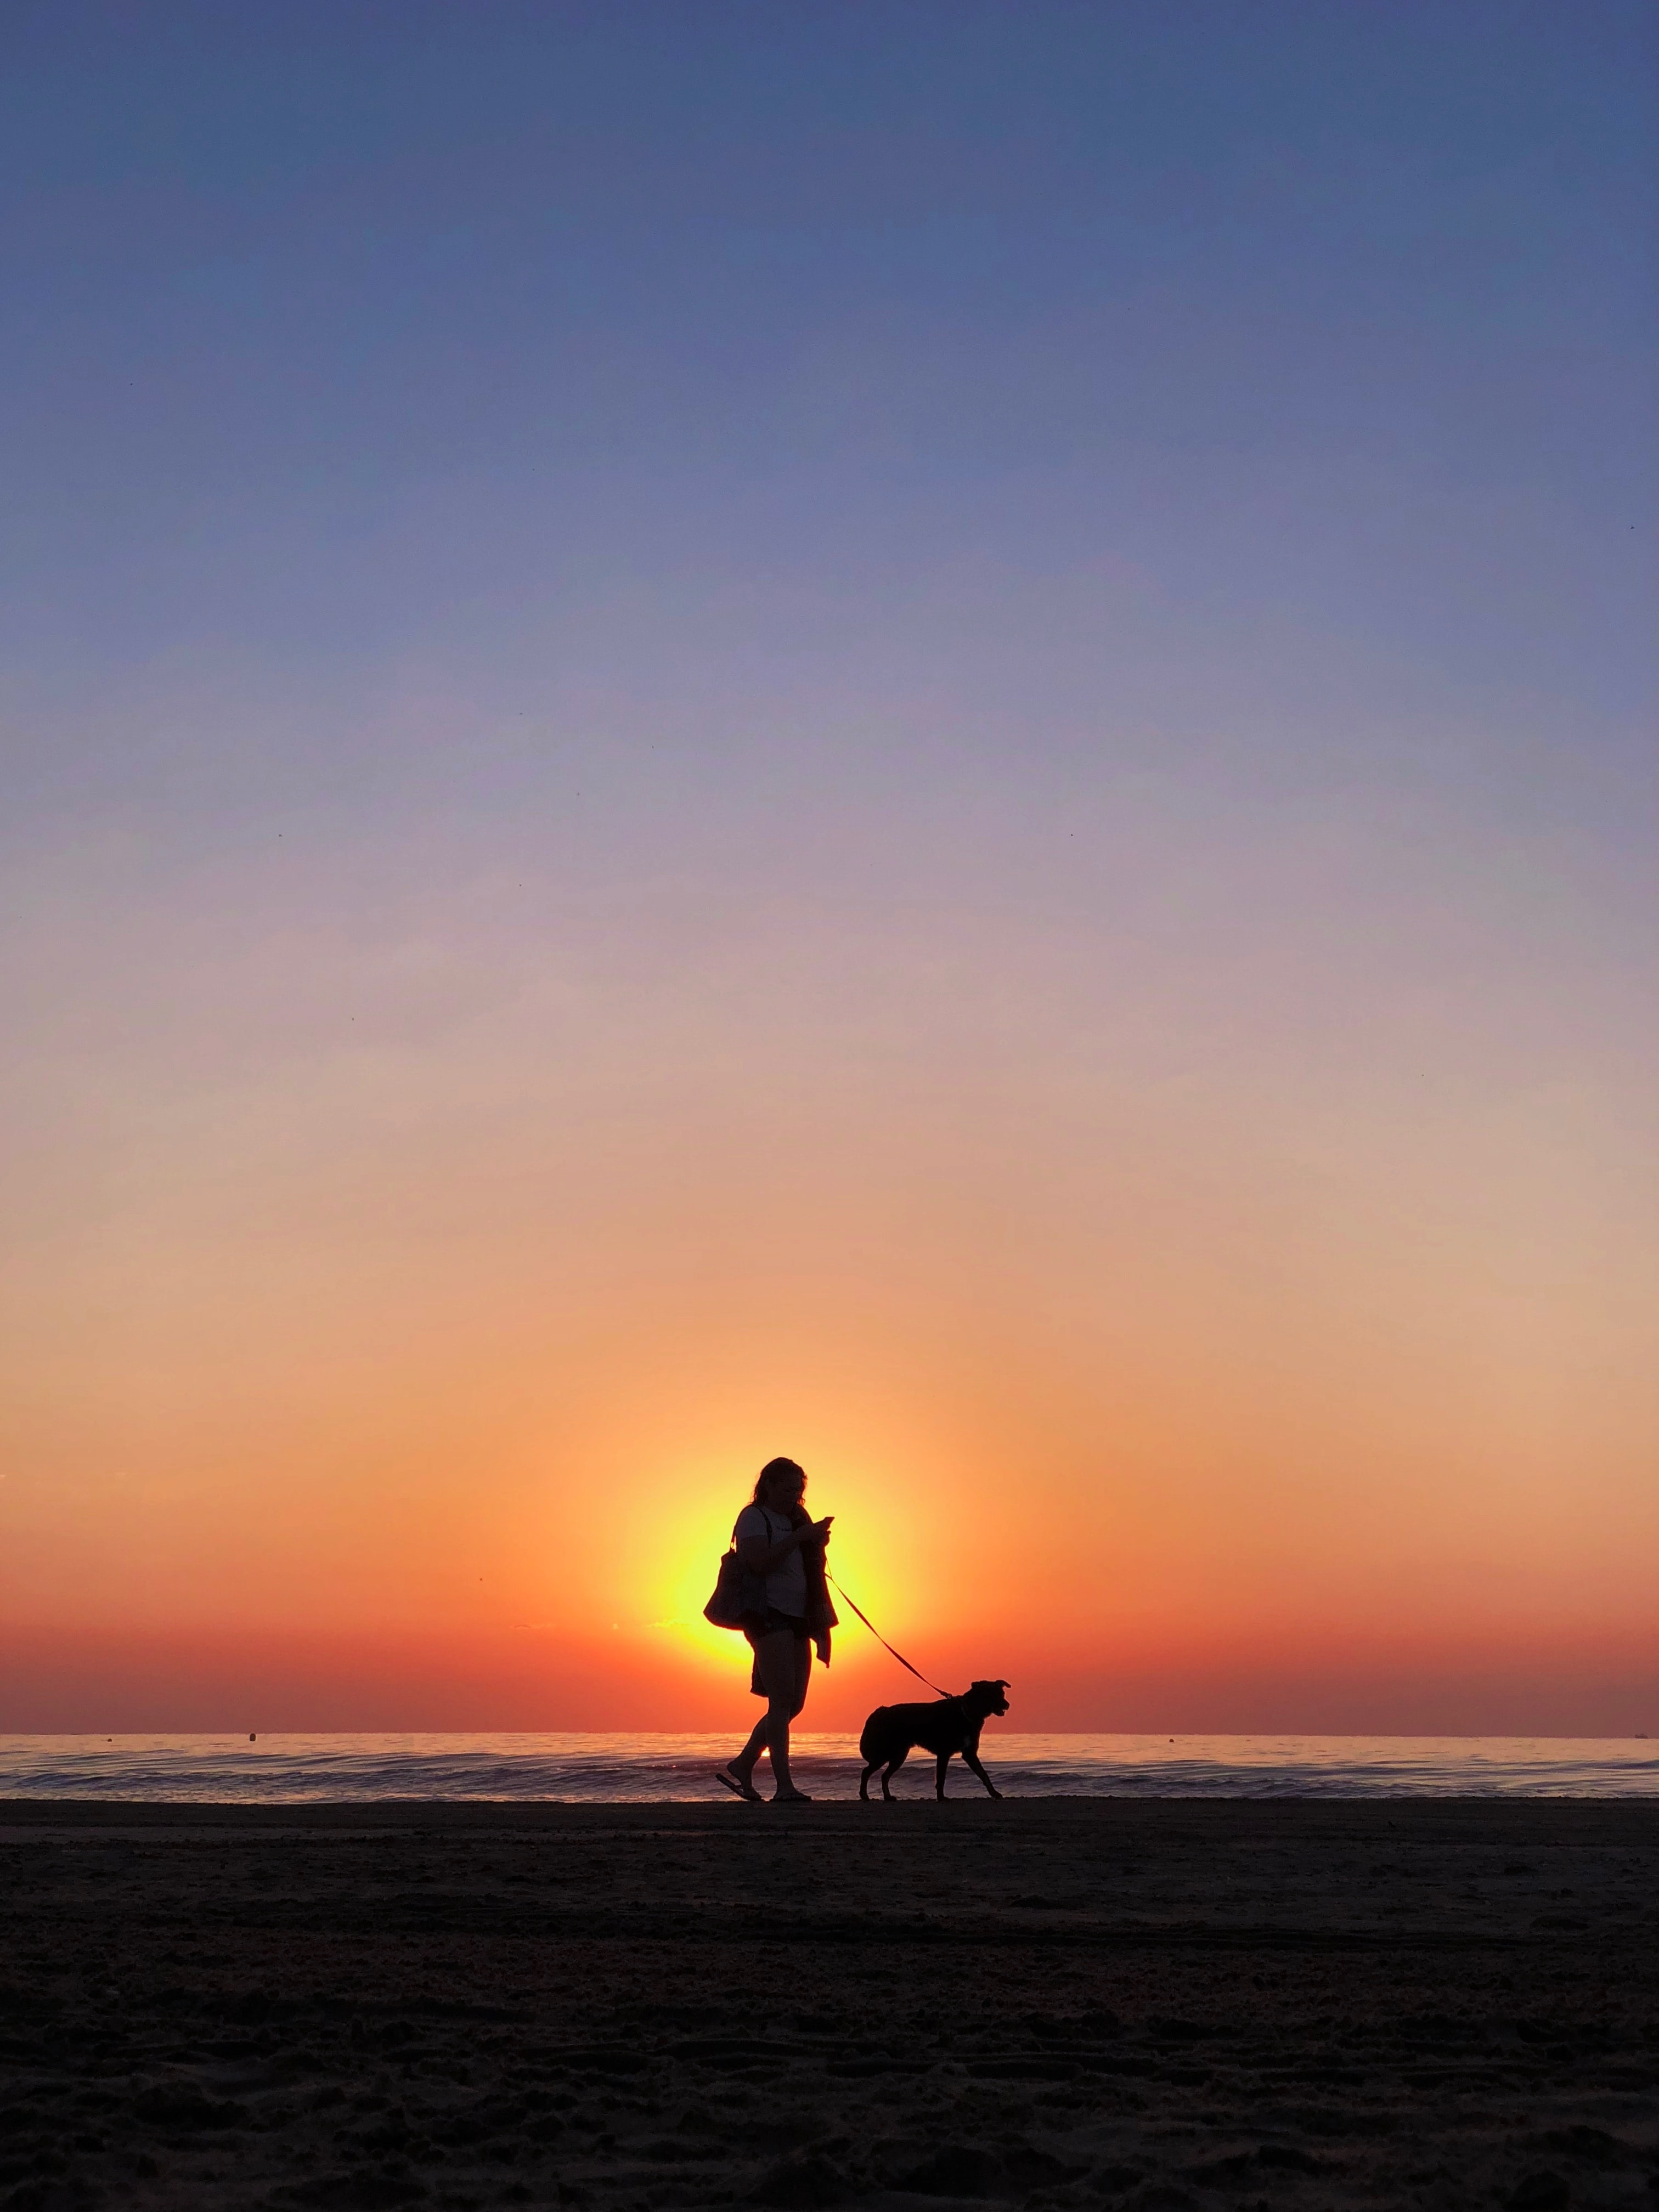 silhouette photography of person holding dog pet leash walking on seashore during golden hour